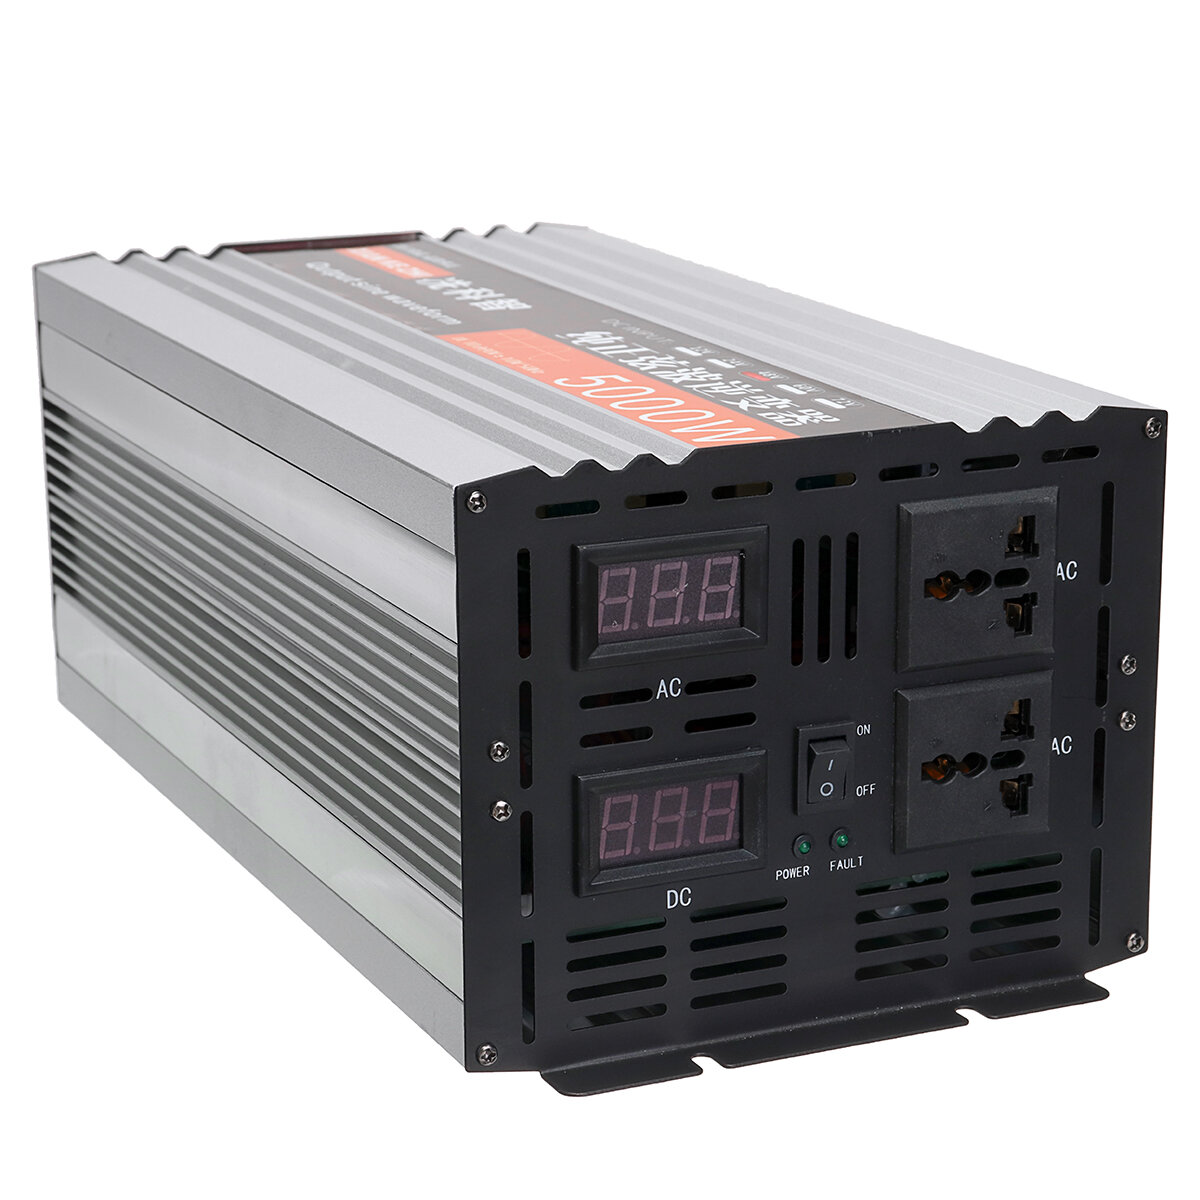 Pure Sine Wave Inverter Dual LED Display 5000W Power Inverter 12V / 24/48 / DC till 220V AC Converter